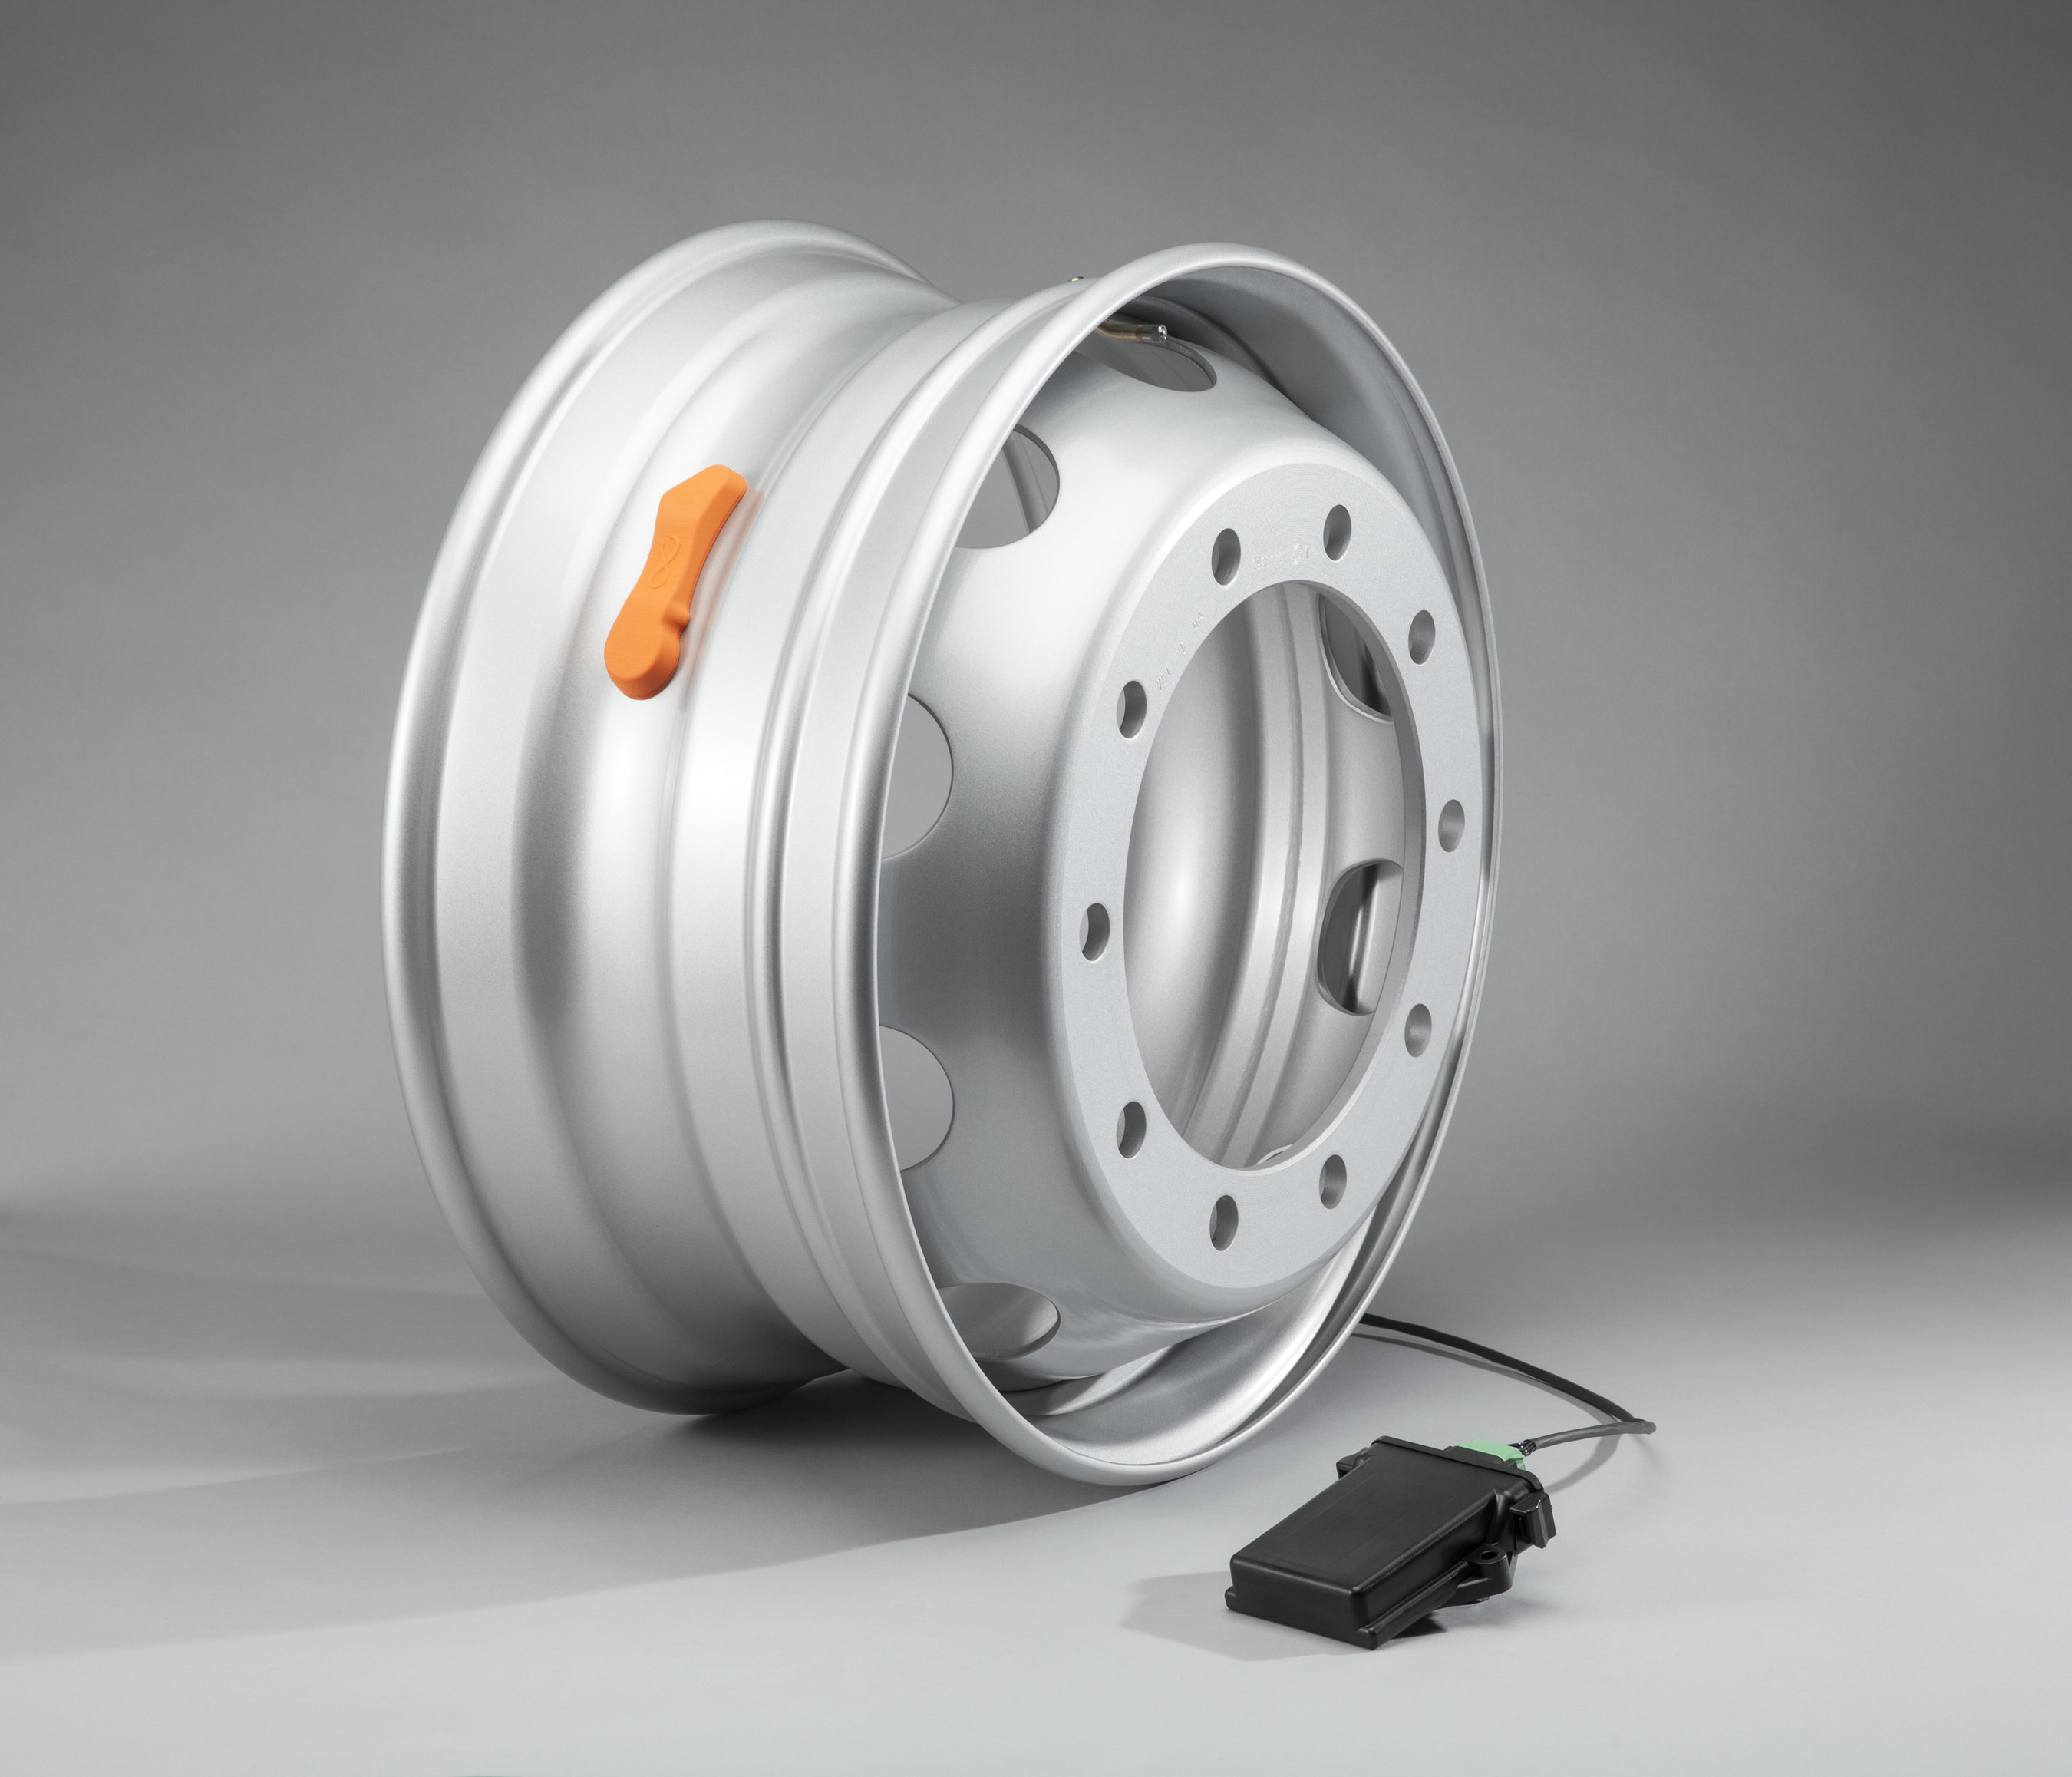 Maxion Wheels' MaxSmart(TM) commercial vehicle steel wheel collects comprehensive wheel and tire data and communicates it to driver and fleet as preventative safety-related intelligence.